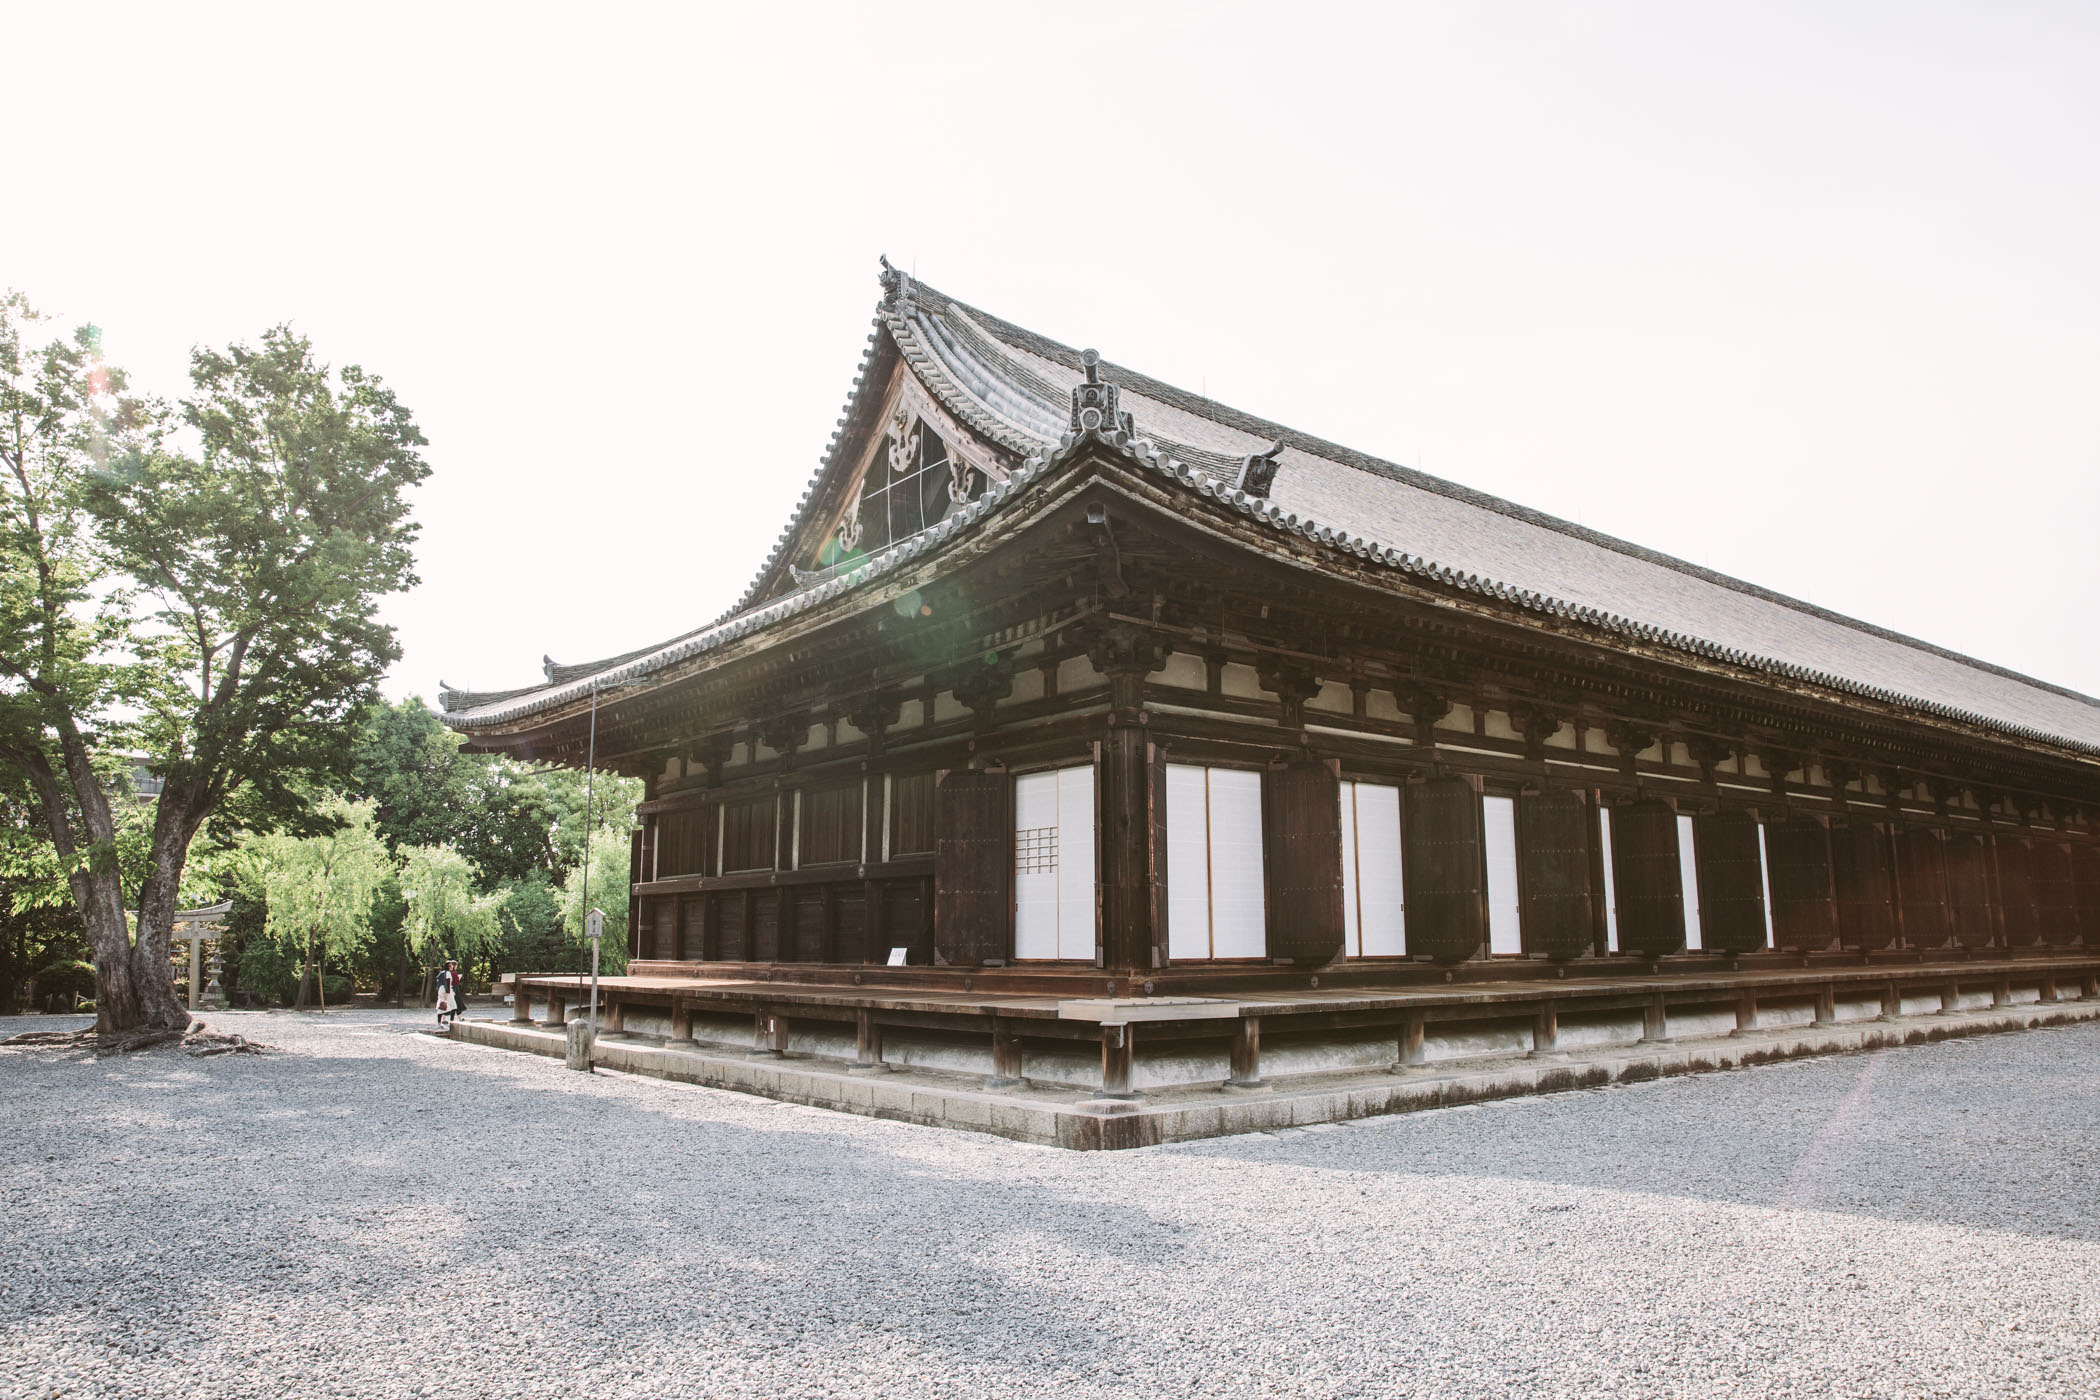 Sanjusangen-do in Kyoto